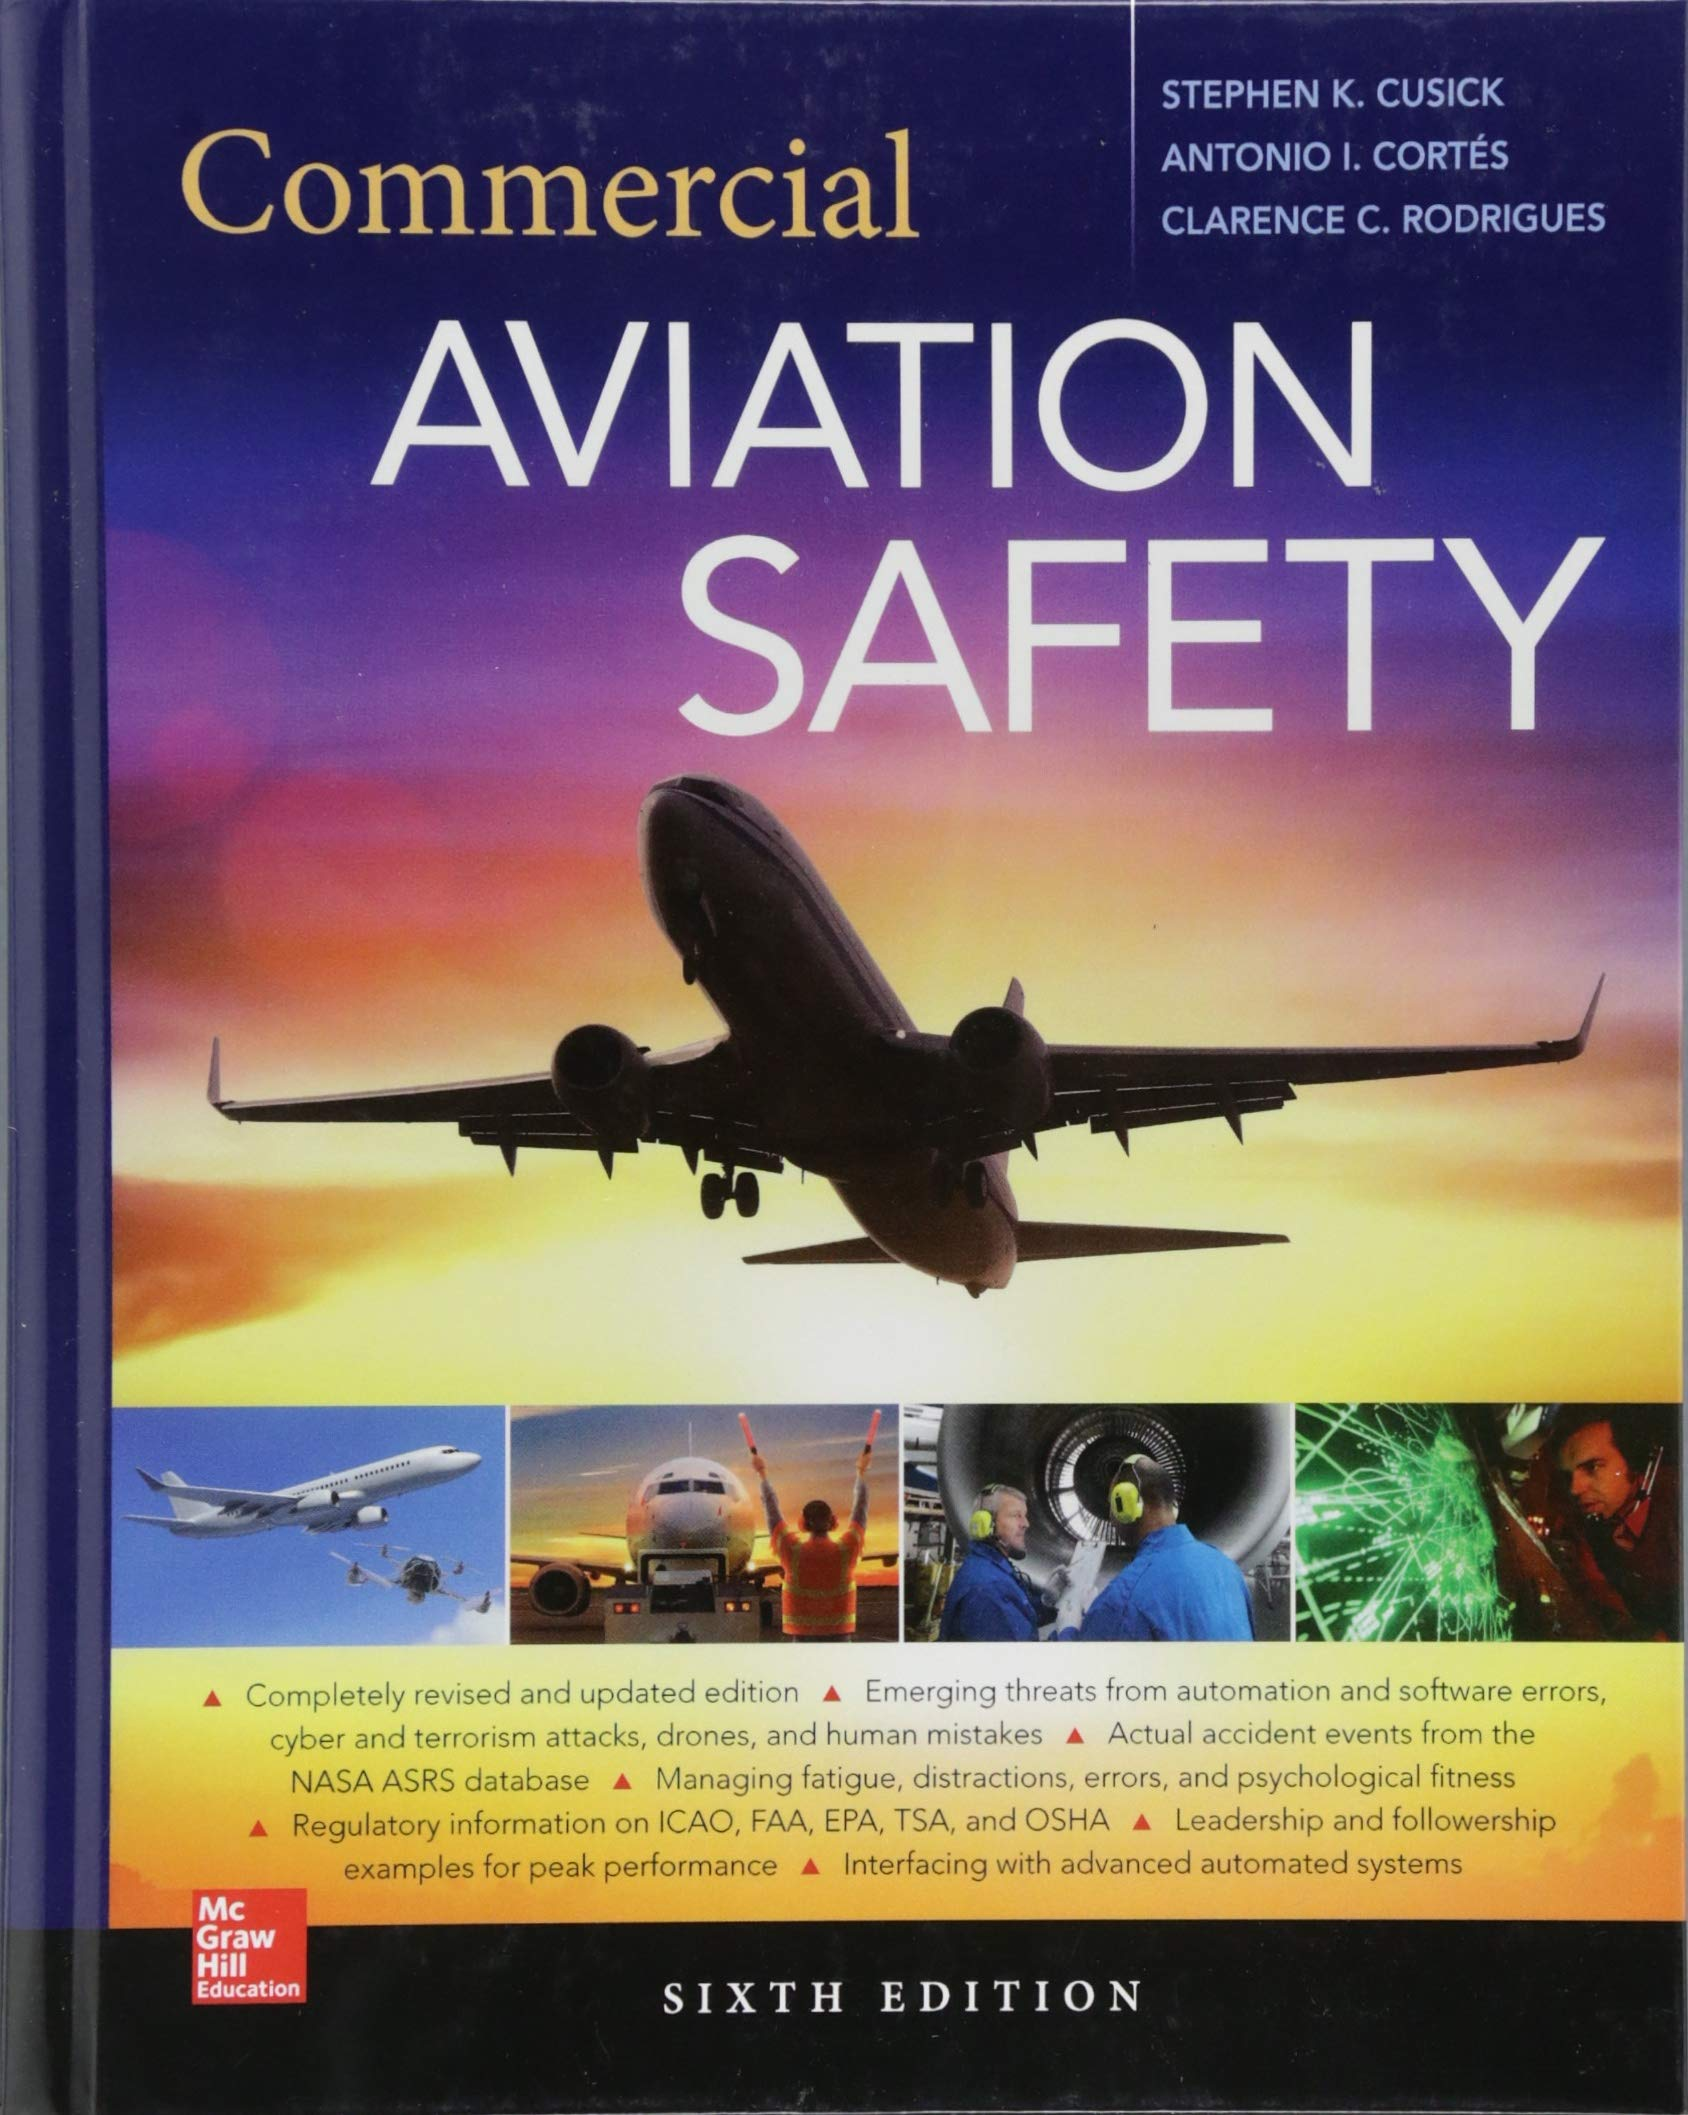 Commercial Aviation Safety, Sixth Edition by McGraw-Hill Education